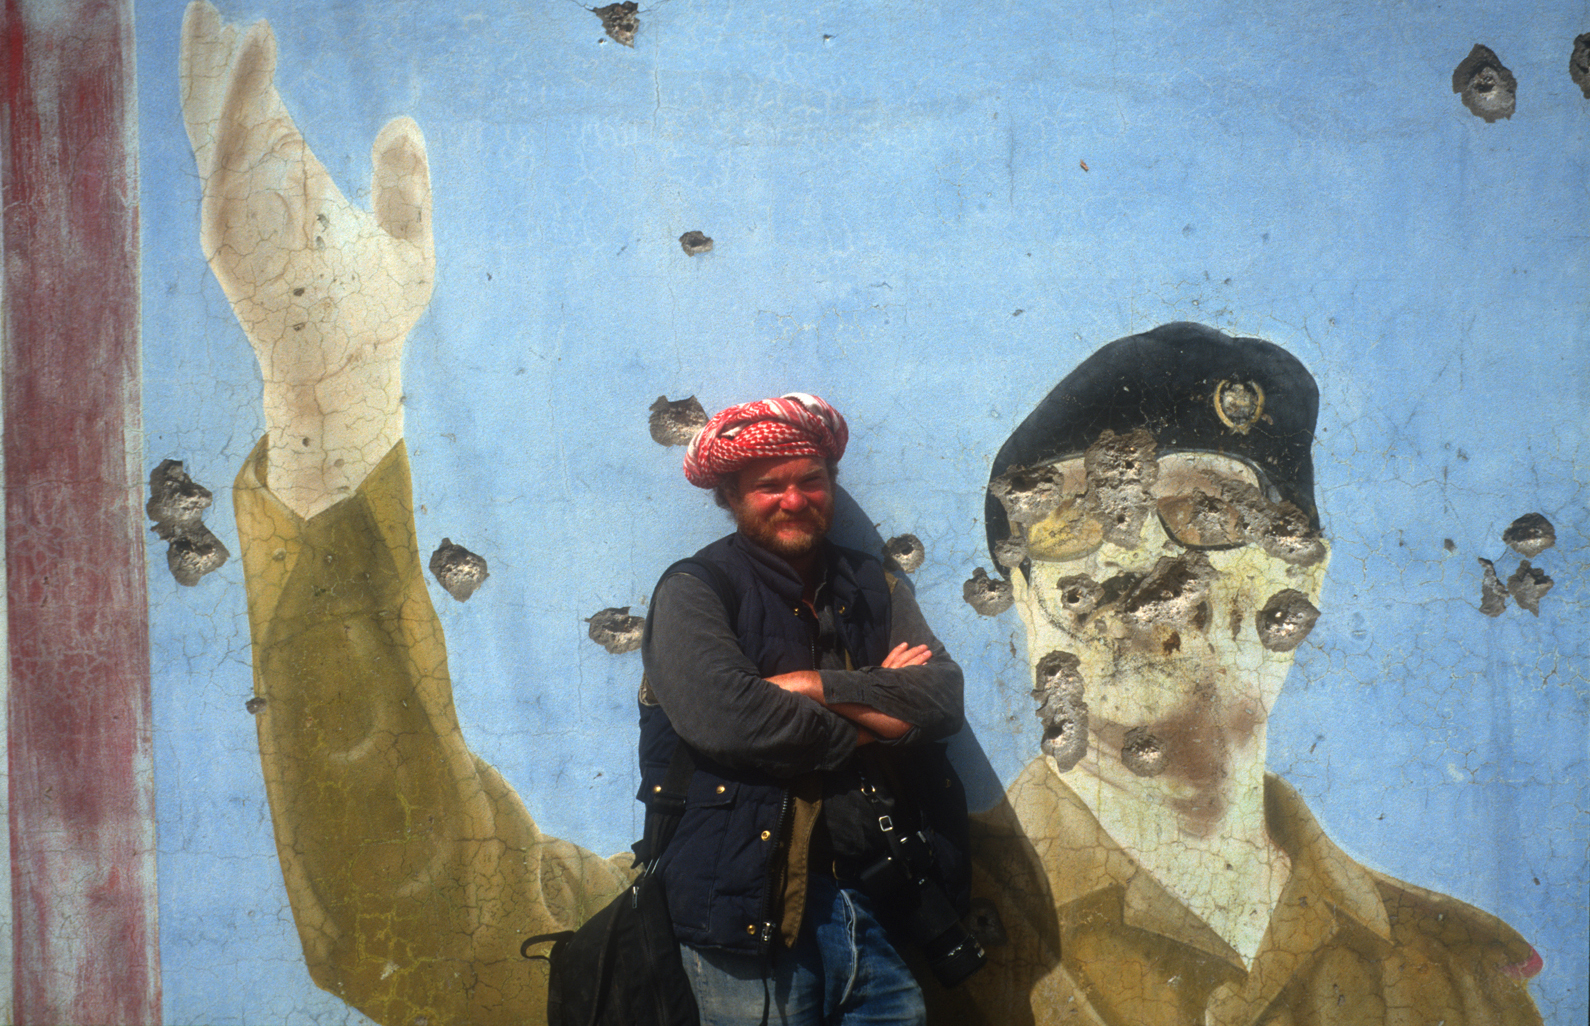 1991: Northern Iraq, in front of bullet riddled portrait of Saddam Hussein